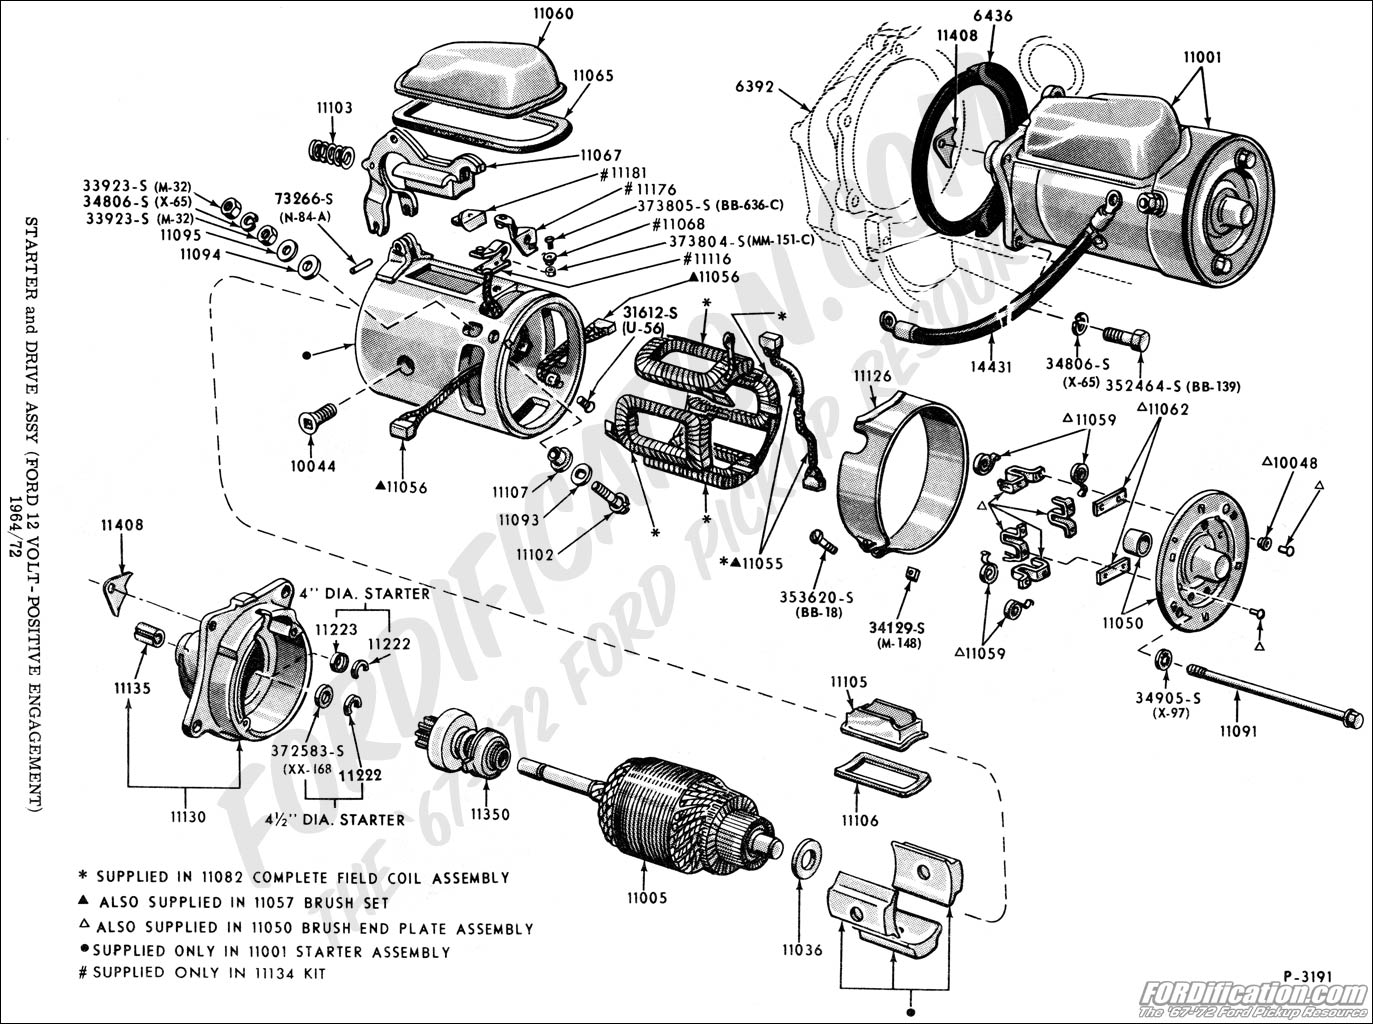 Schematics_i on 1965 Ford Fairlane Wiring Diagram